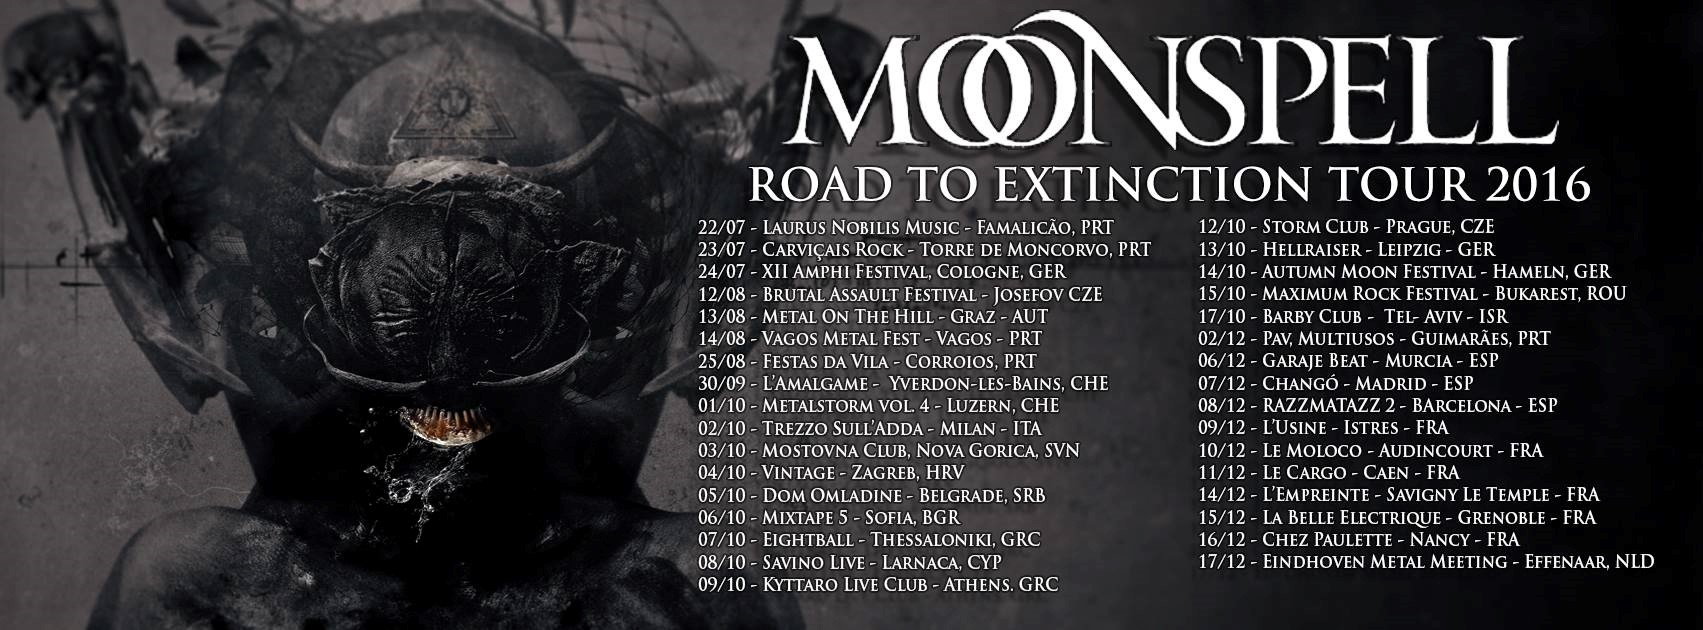 Moonspell - Road To Extinction Tour 2016